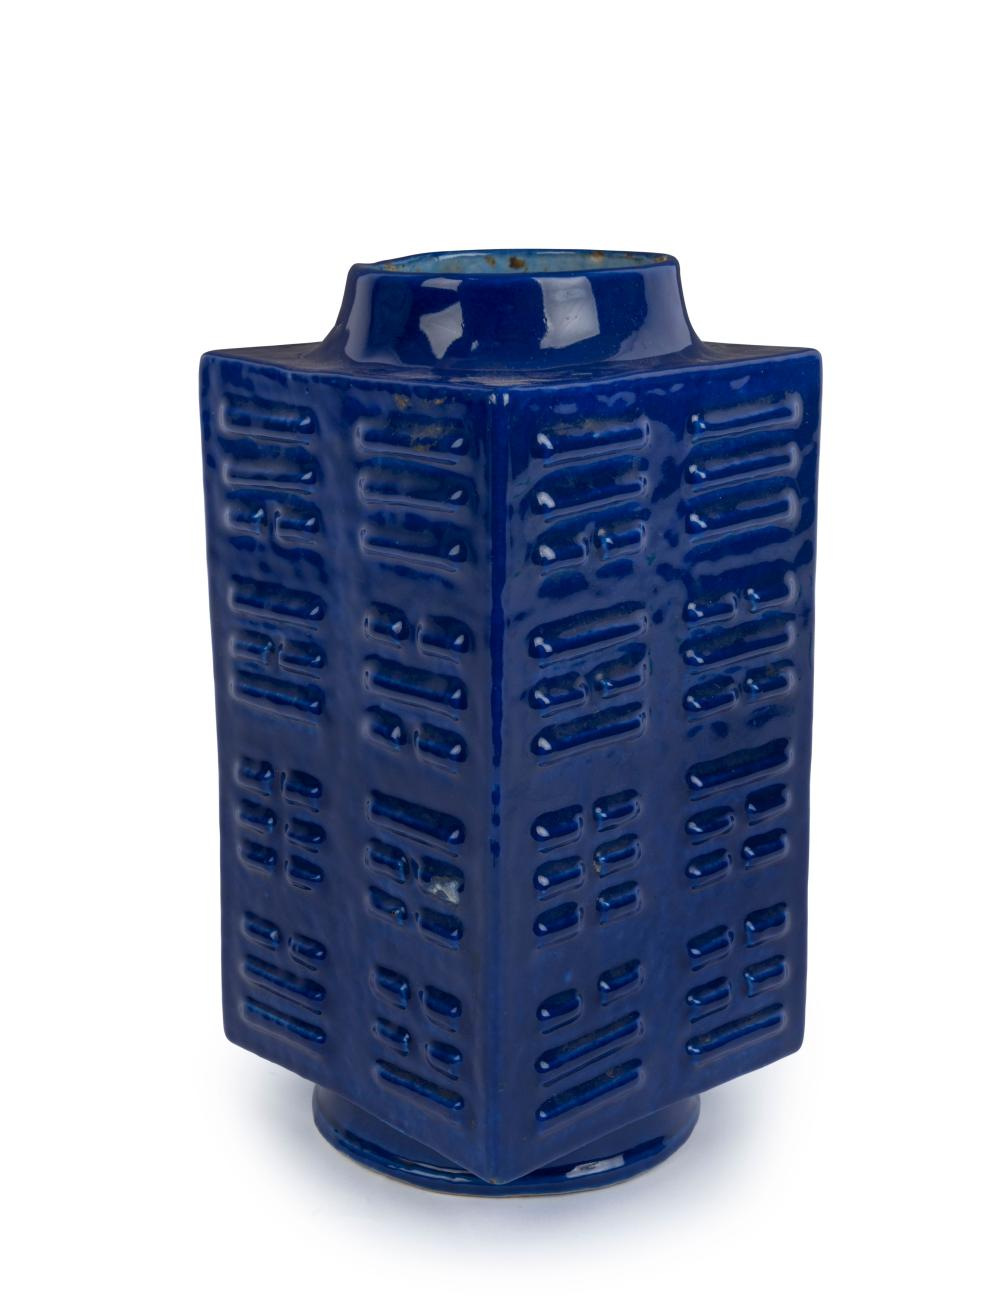 An antique Chinese square form vase with blue glaze, Qing Dynasty, 18th/19th century, 27cm high